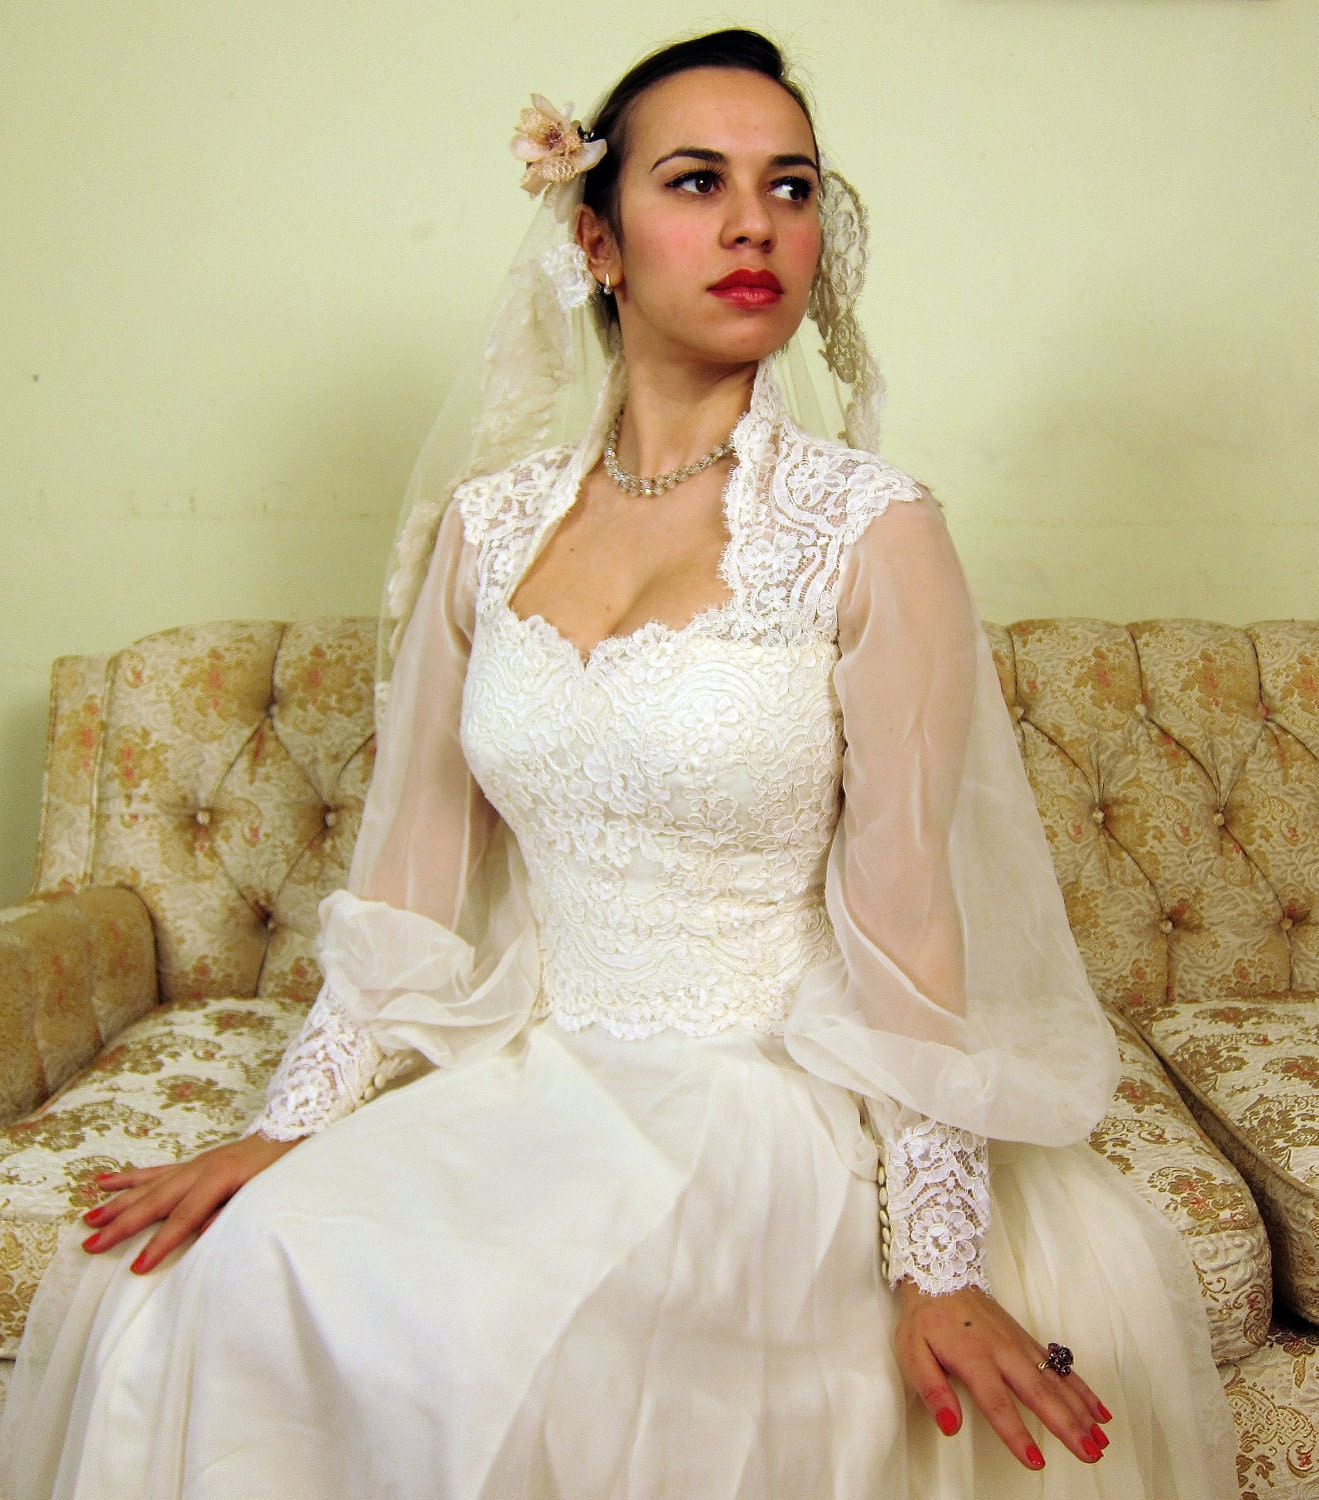 Vintage 1970s house of bianchi wedding dress in ivory lace for 1970s vintage wedding dresses